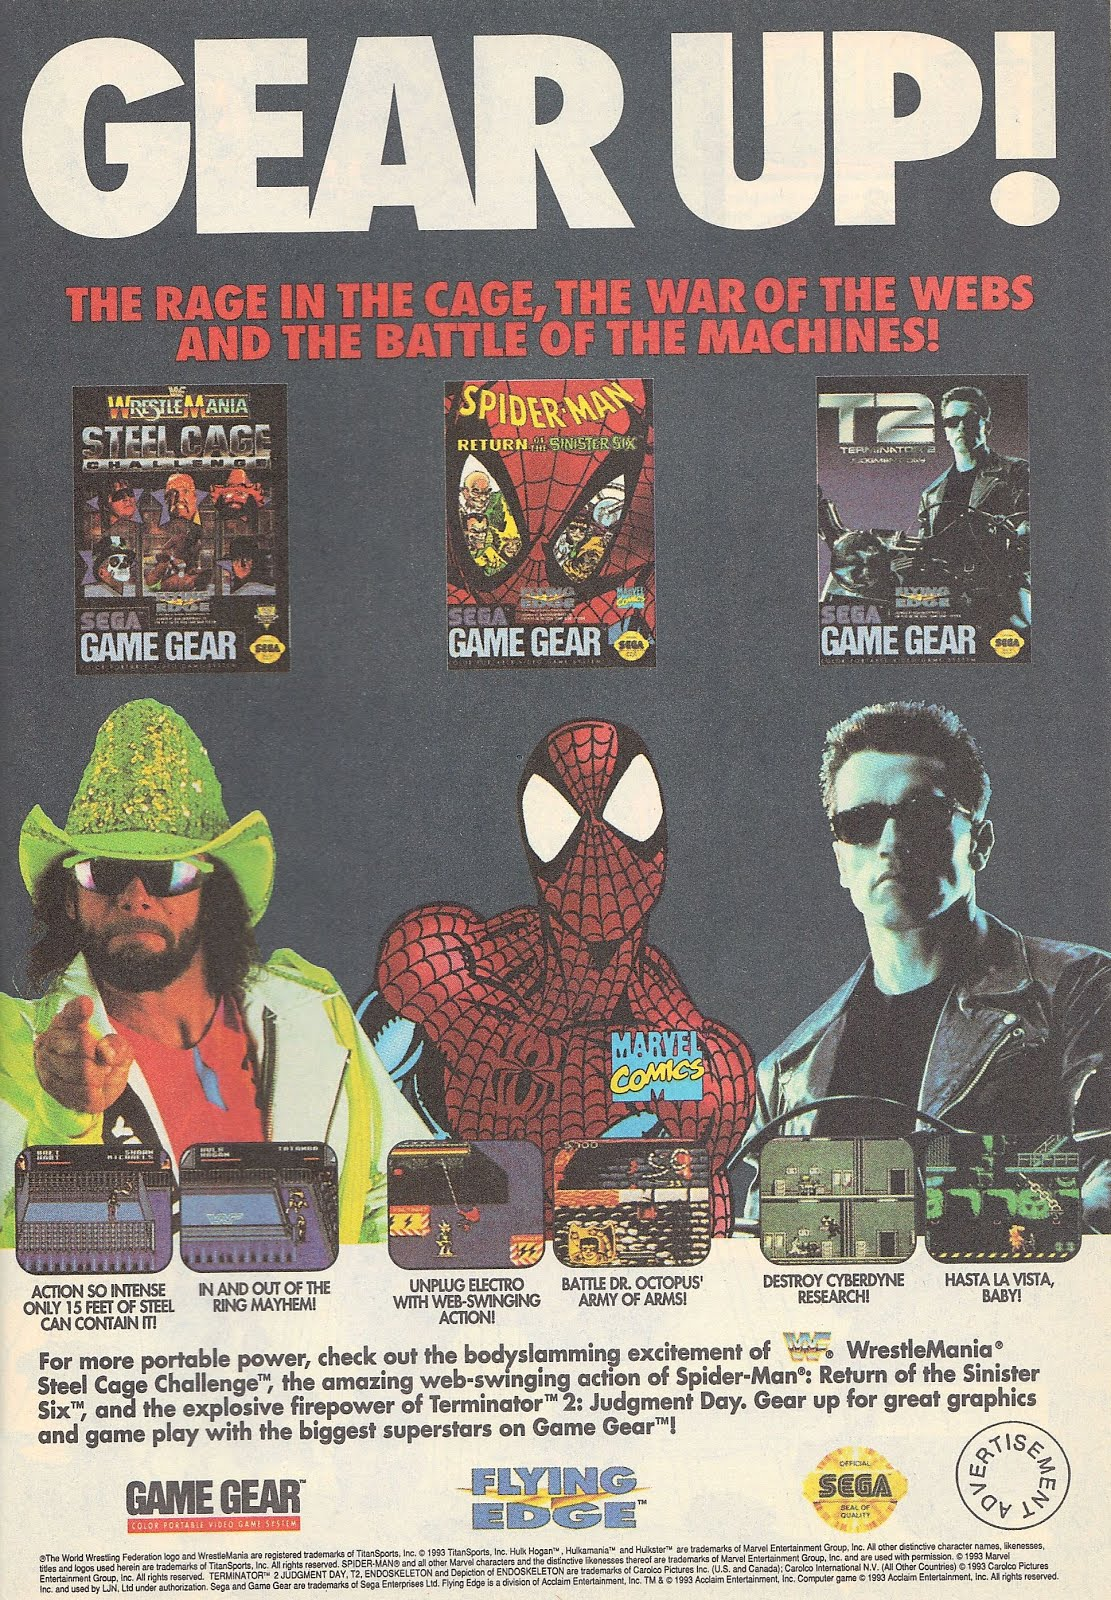 WWF Wrestlemania Steel Cage Challenge Game Gear comic book ad